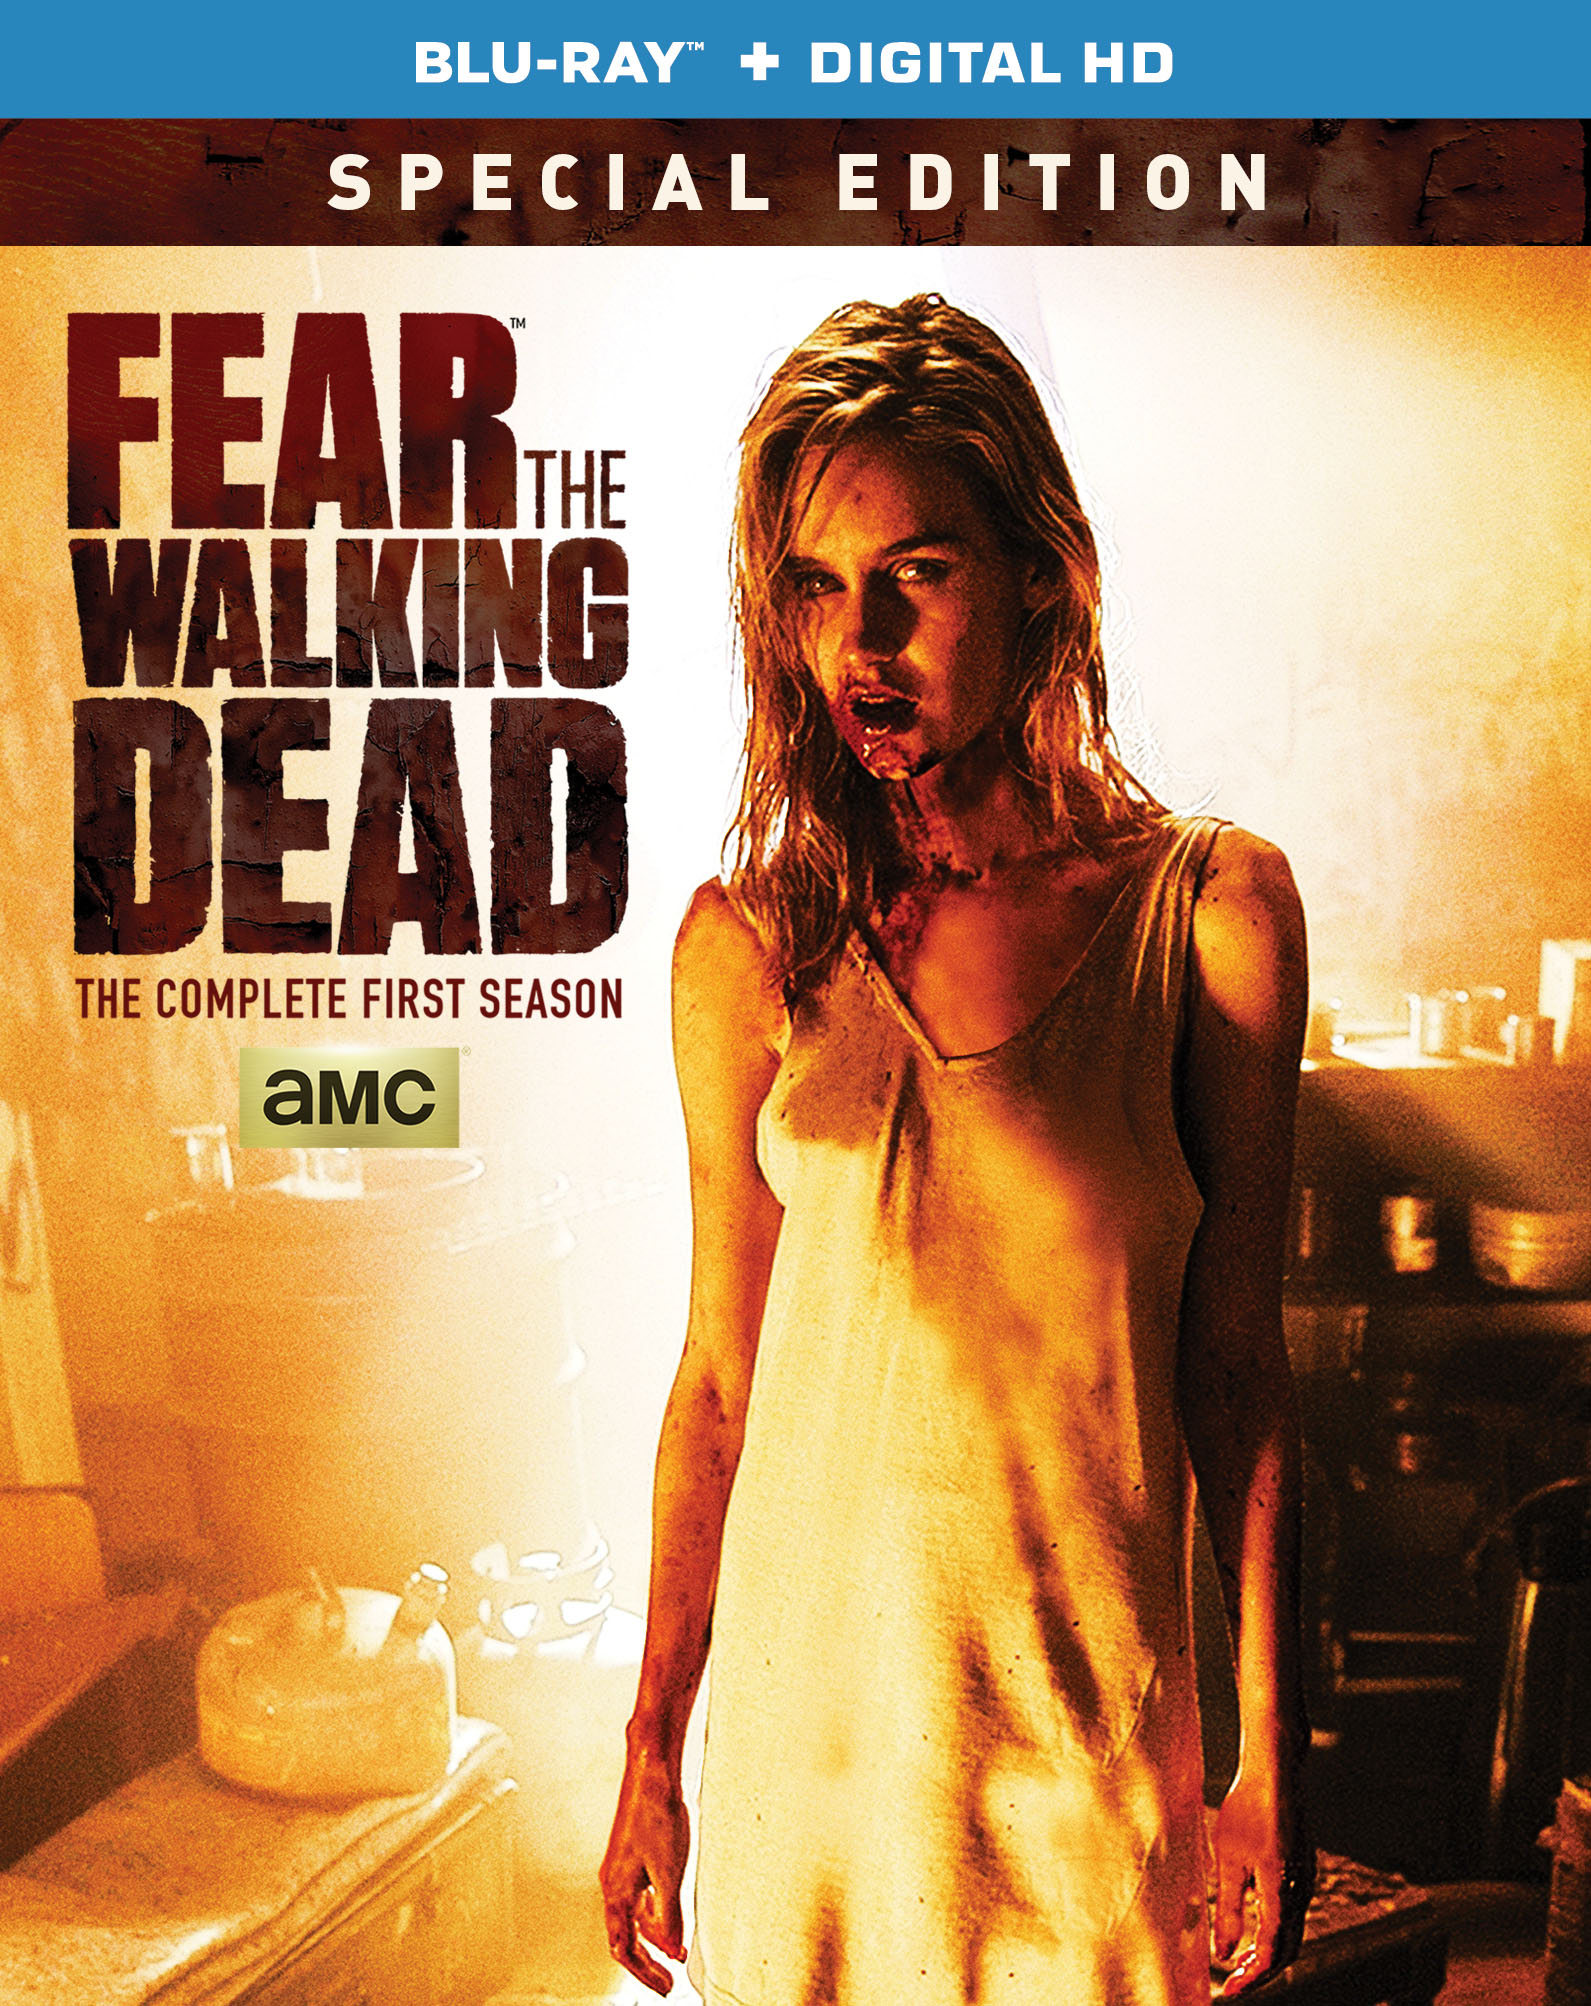 fear the walking dead season 1 sp edition blu ray